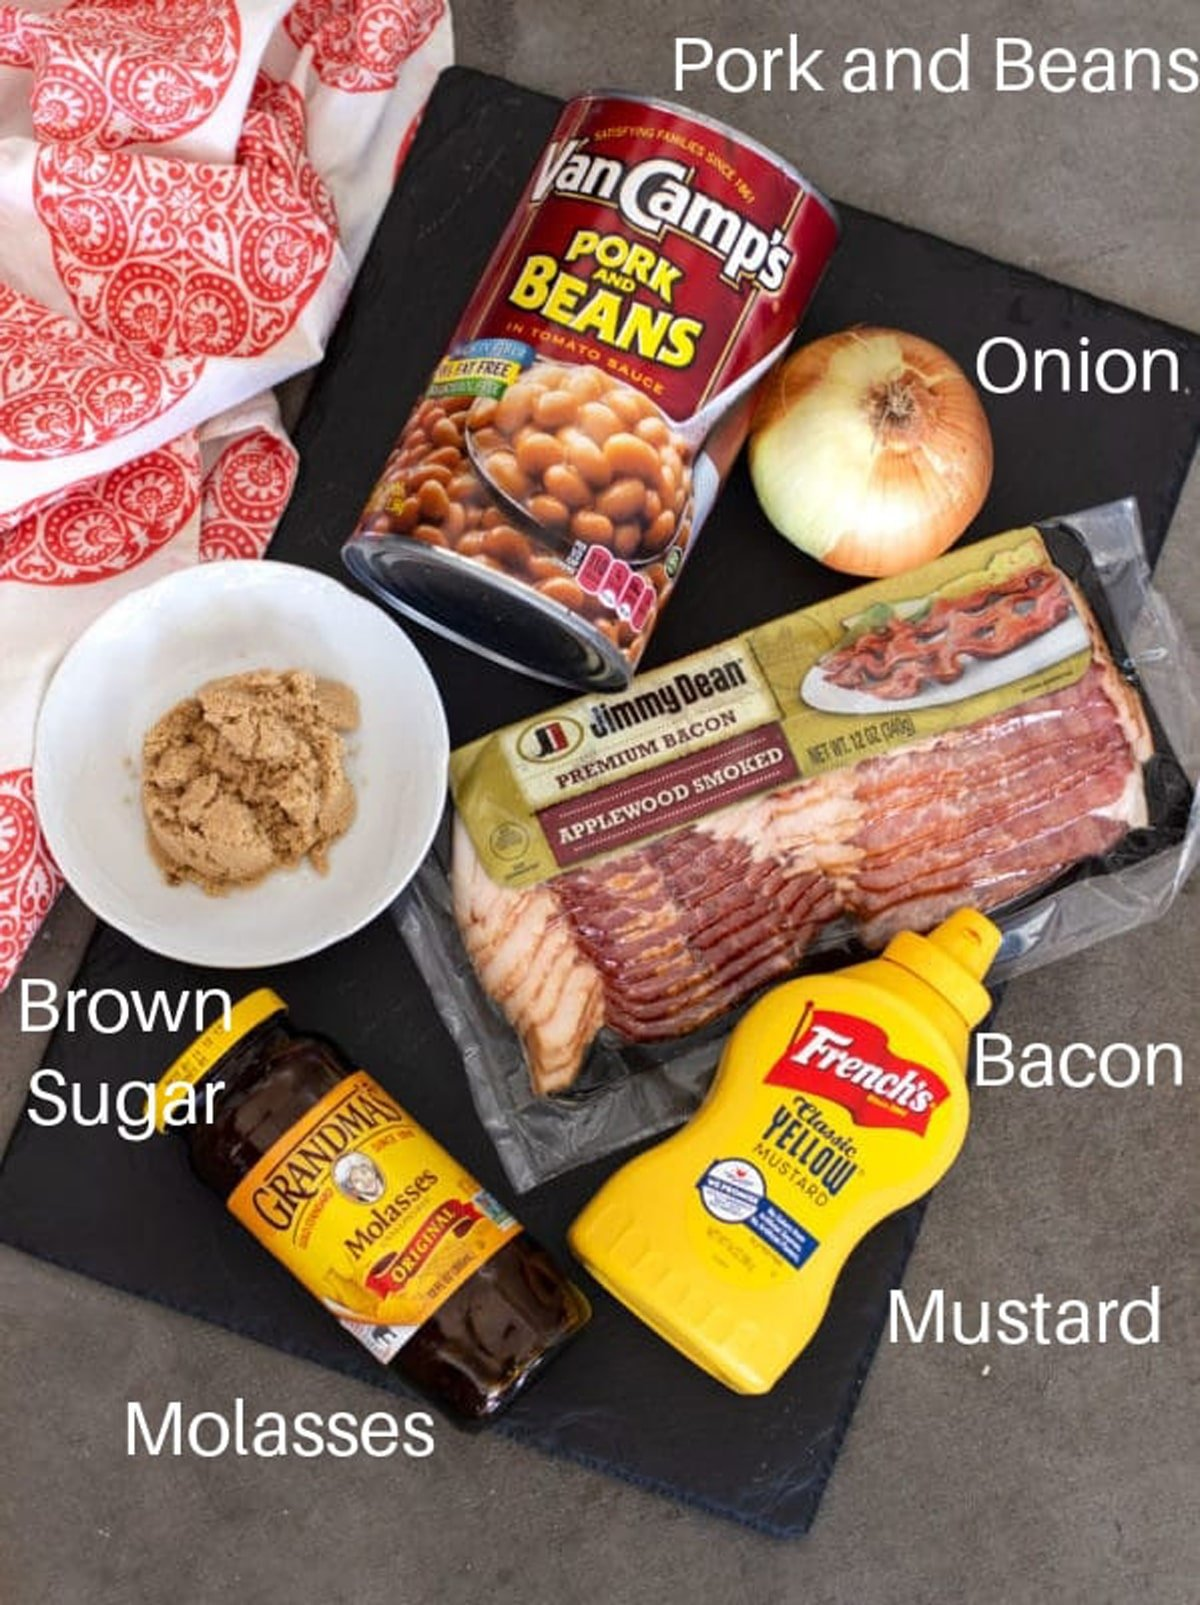 Beans, bacon, onion mustard, and sugar on a counter.